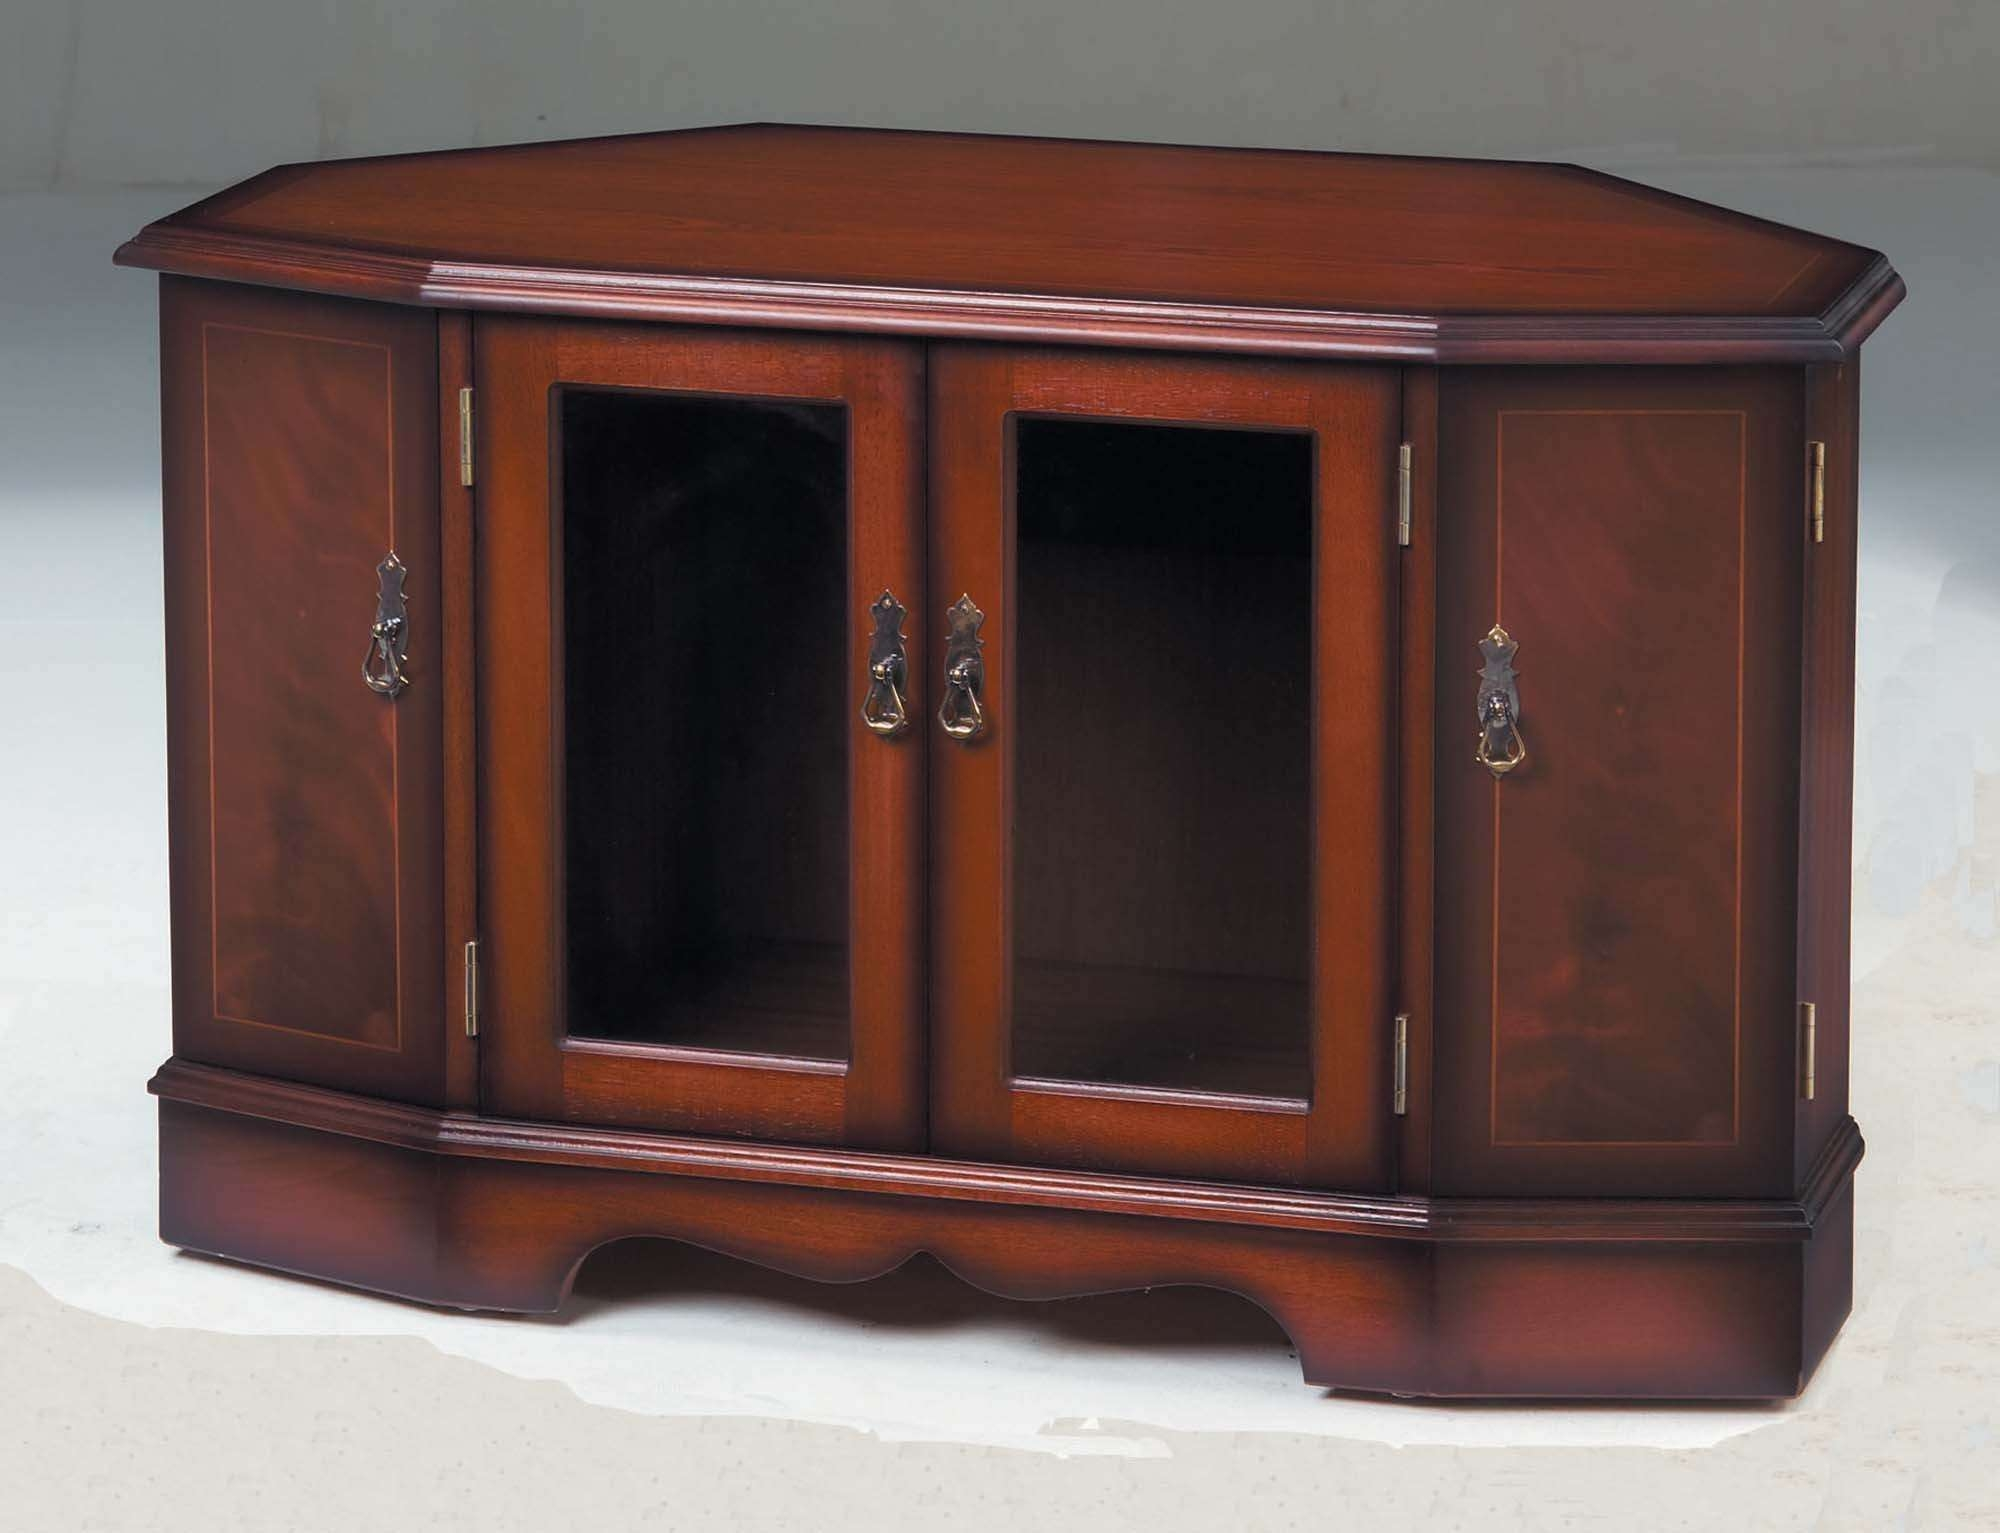 Strongbow Mahogany 1037 Corner Tv Cabinet | Tr Hayes – Furniture For Mahogany Tv Stands (View 2 of 15)